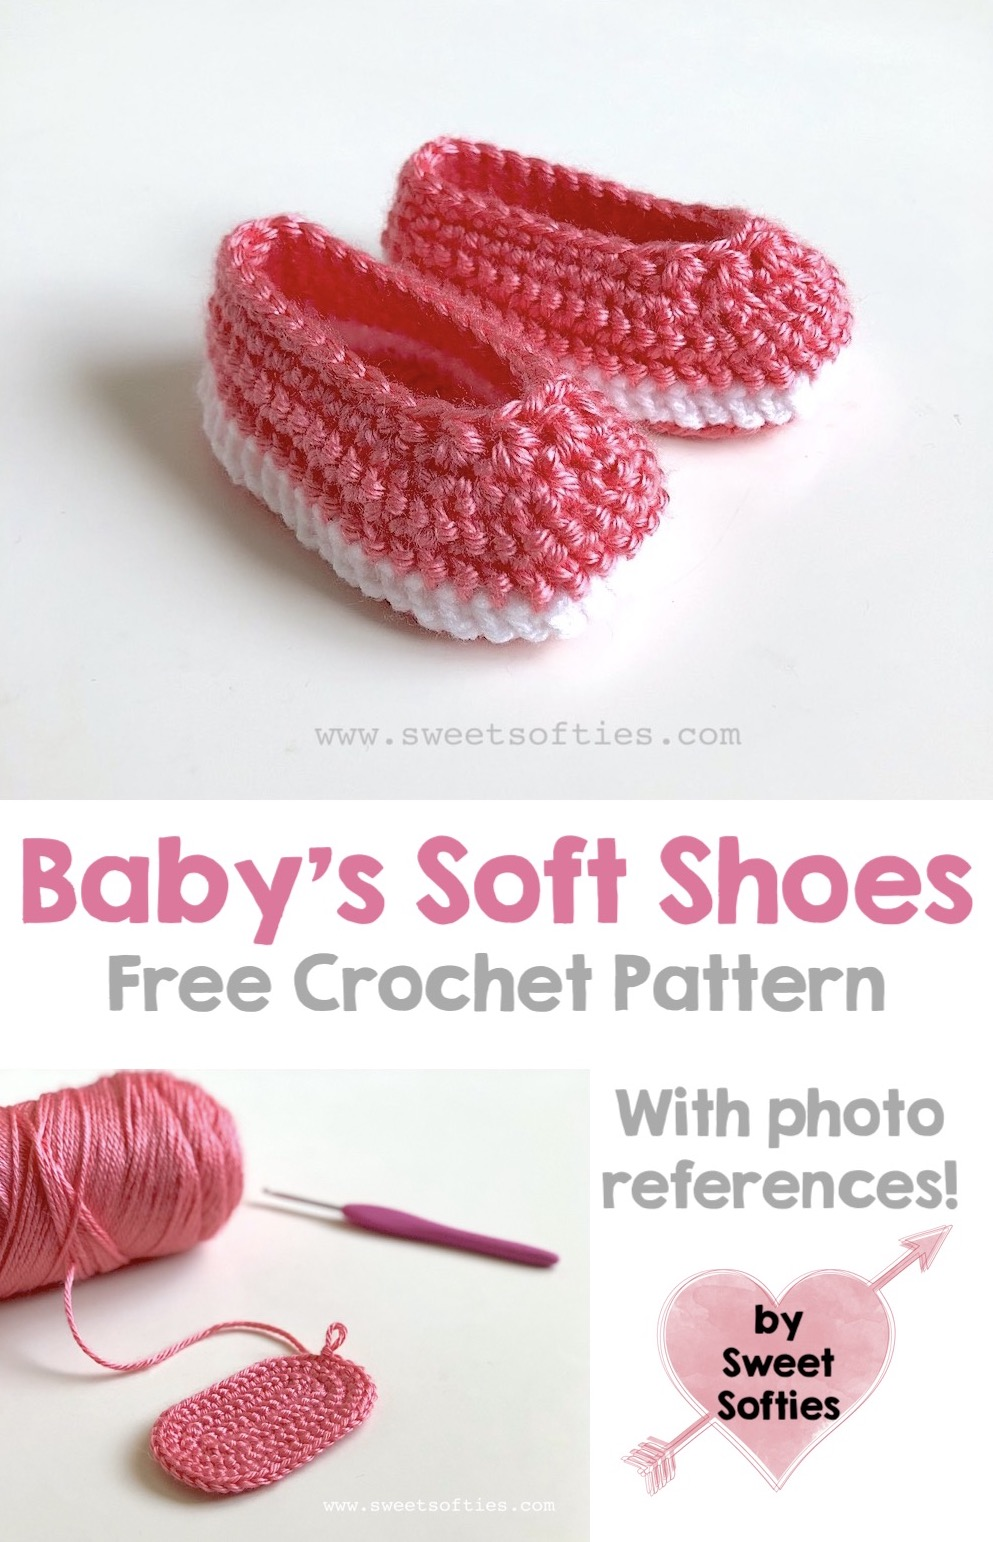 Baby's Soft Shoes (Free Crochet Pattern) - Sweet Softies